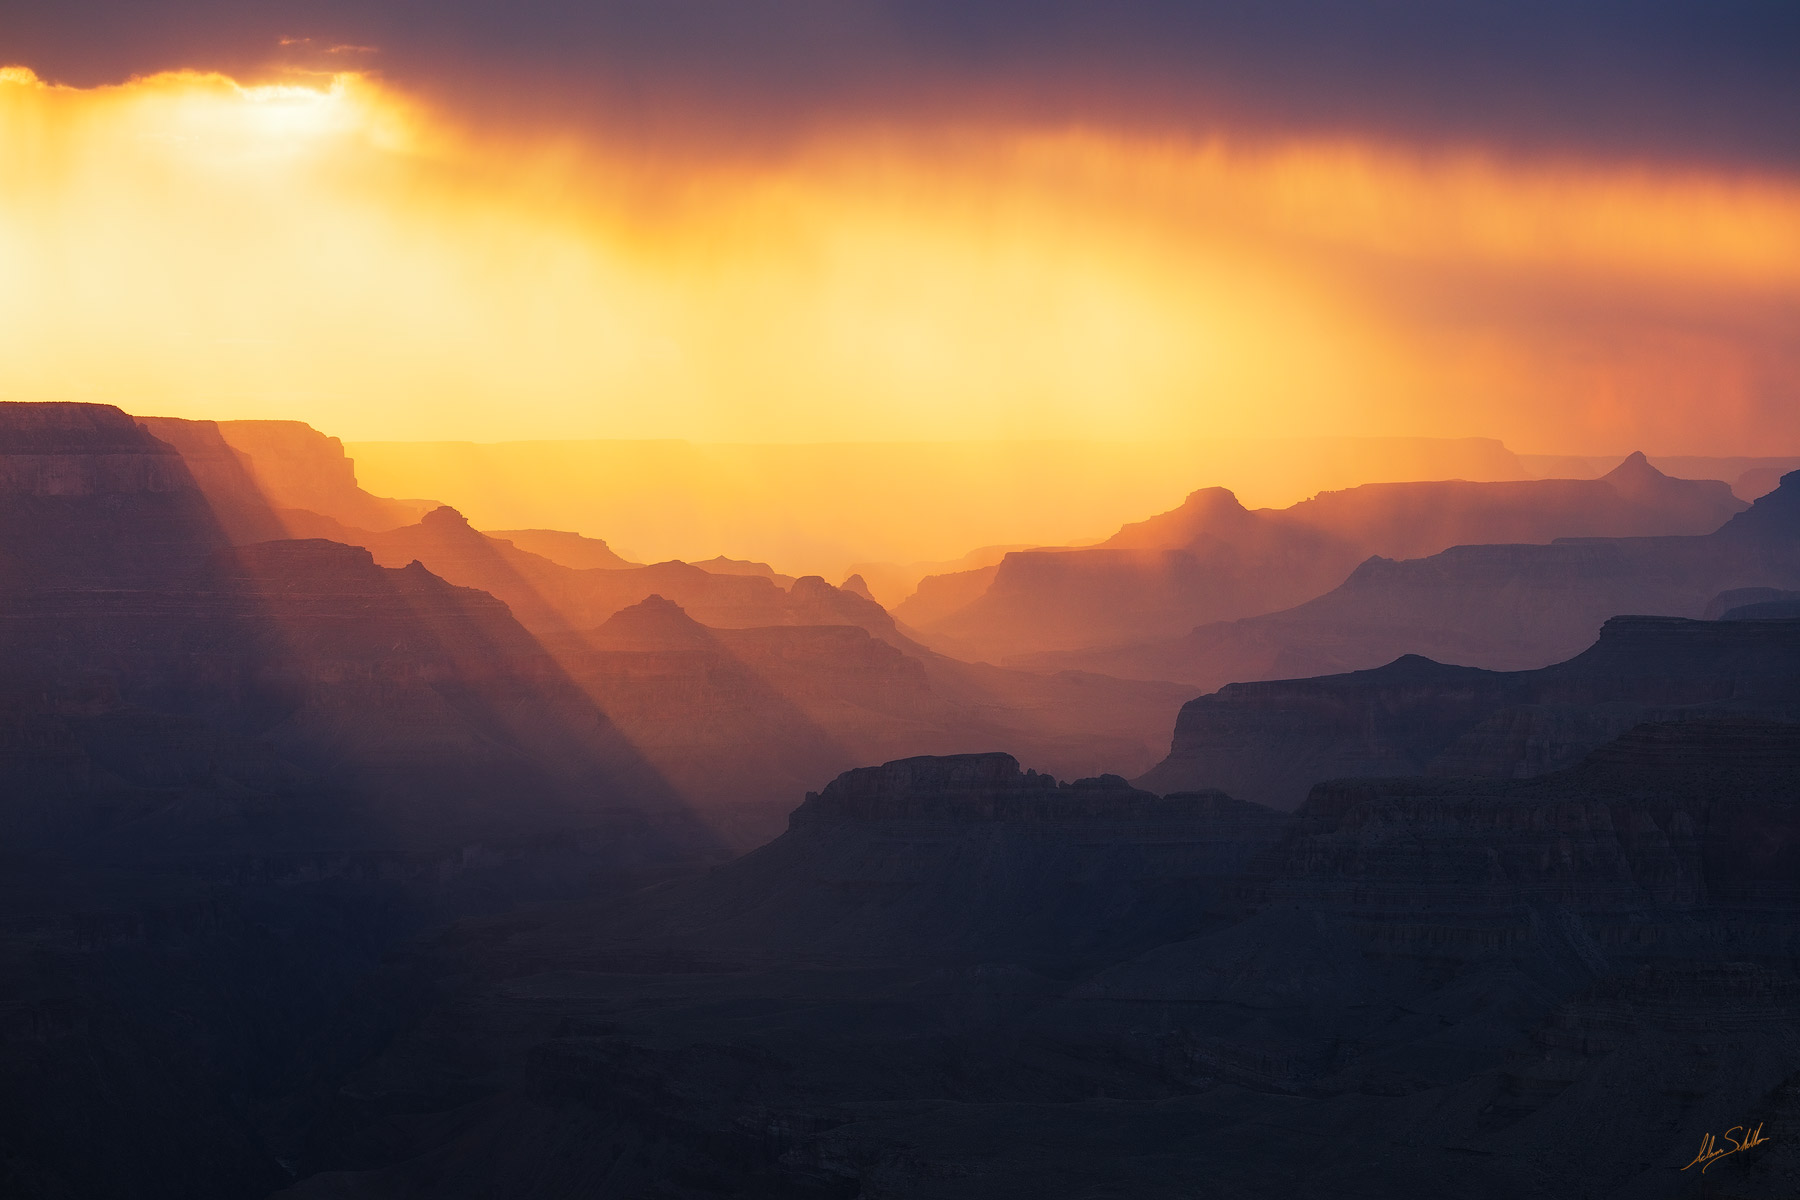 Summer rain is backlit by the setting sun as a monsoon storm begins to clear. From the South Rim of Grand Canyon National Park...